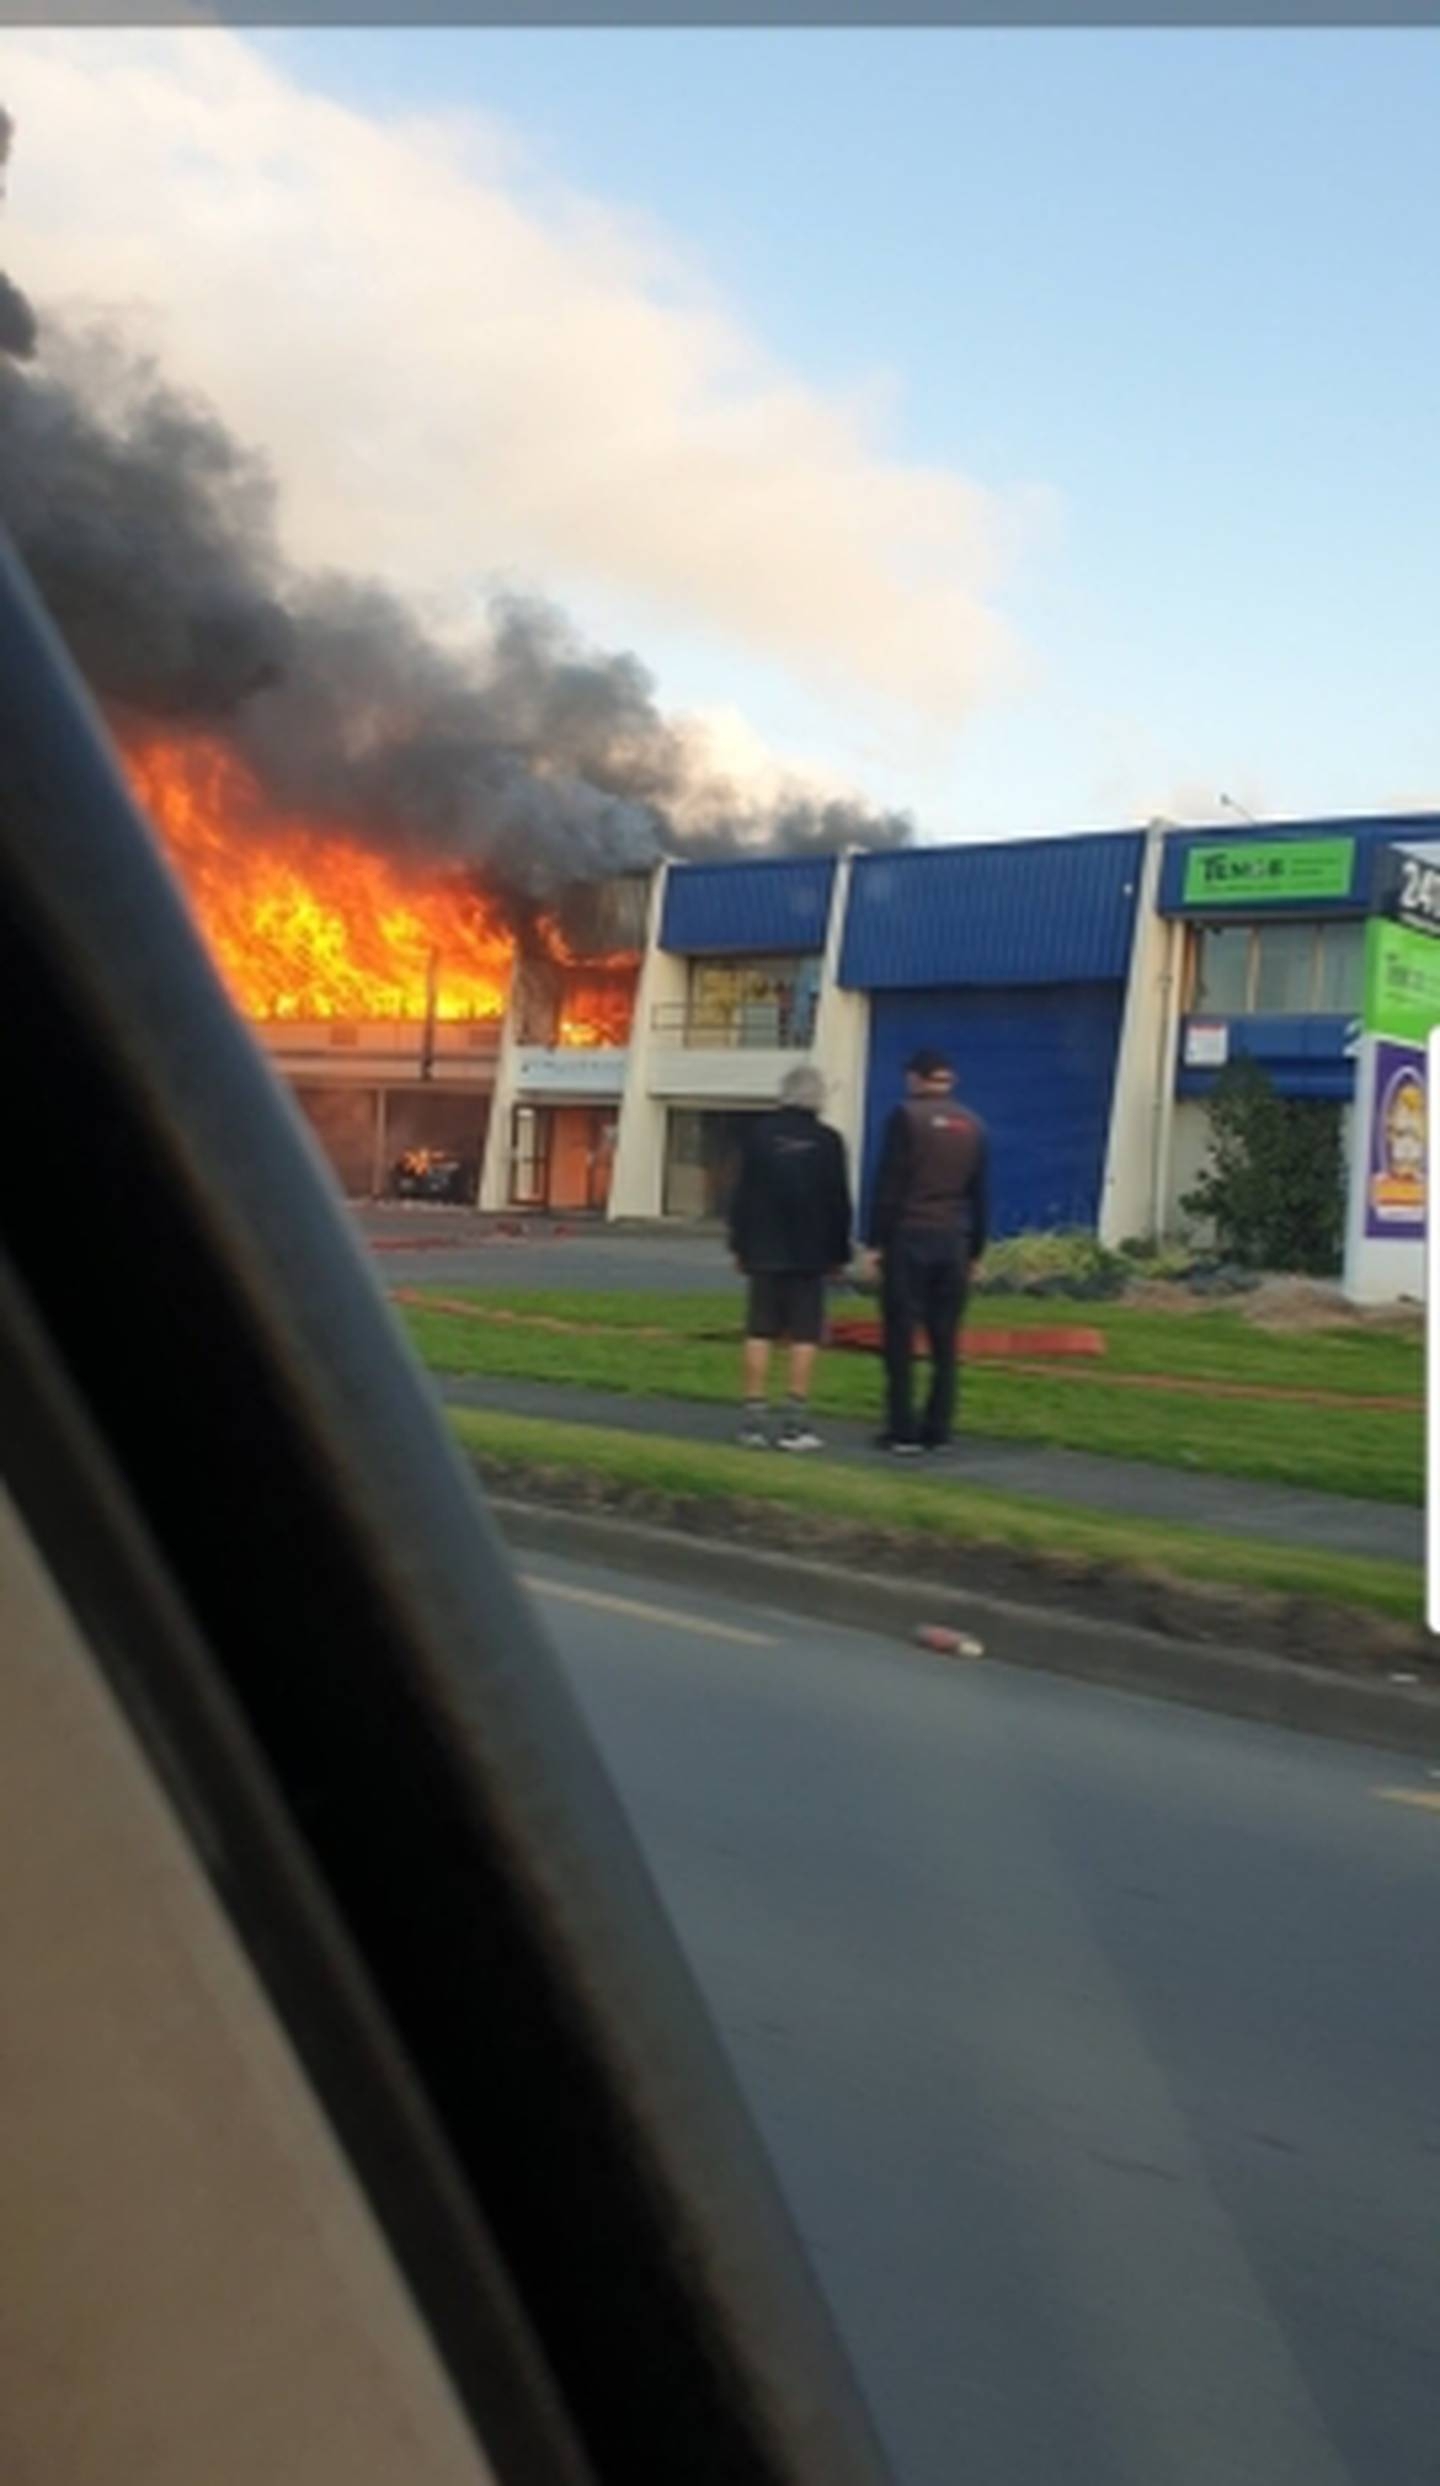 Flames were seen from a building fire on Auckland's Ti Rakau Drive. Photo / Supplied